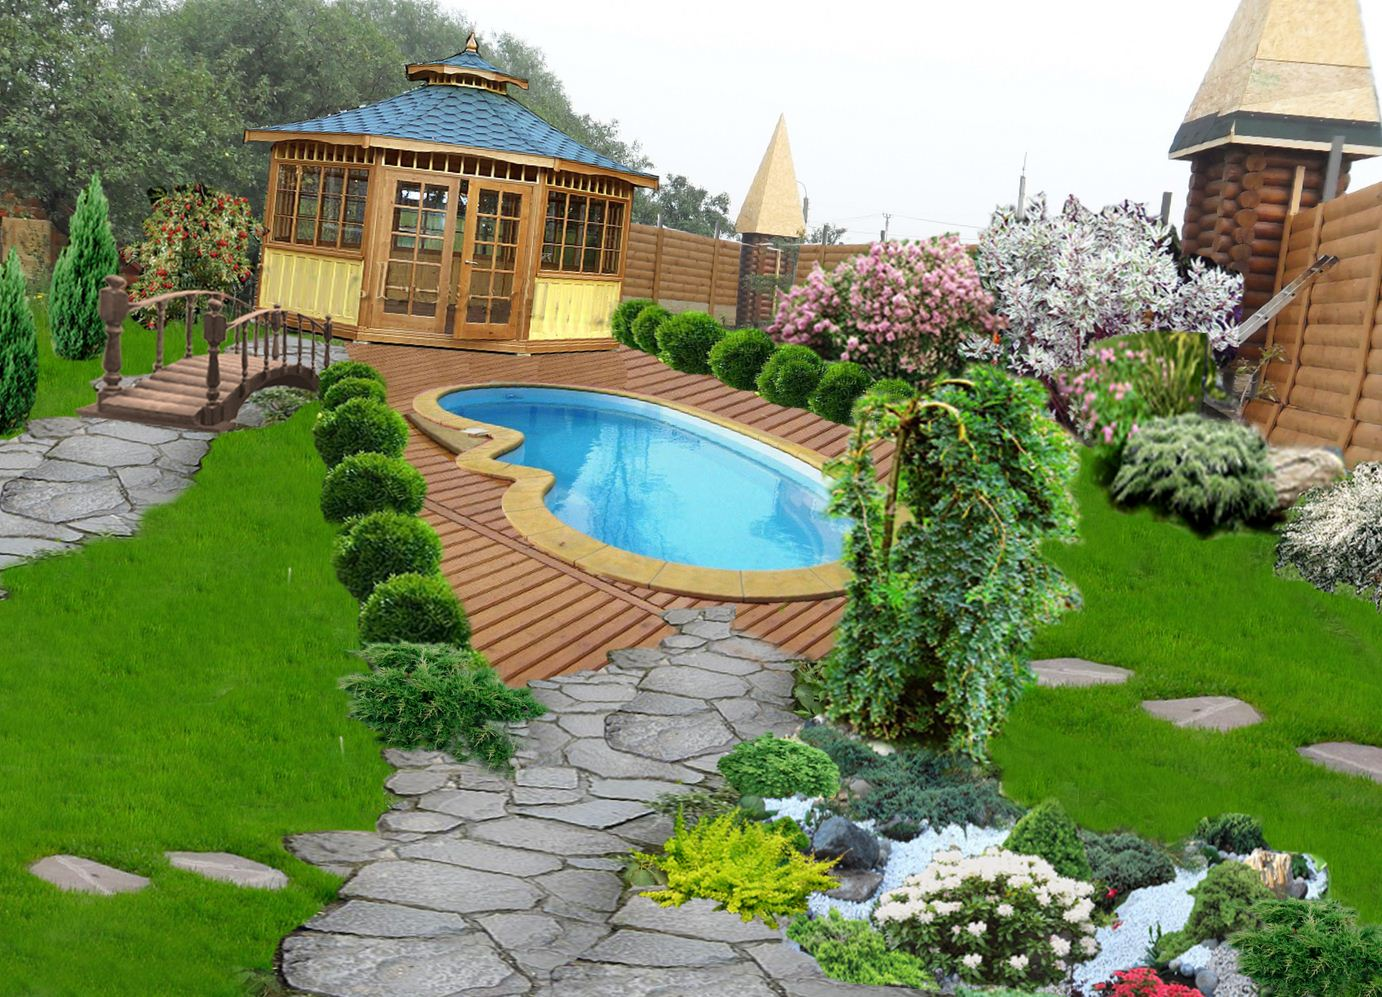 Amazing Backyard Landscaping Designs Ideas - Decor Units